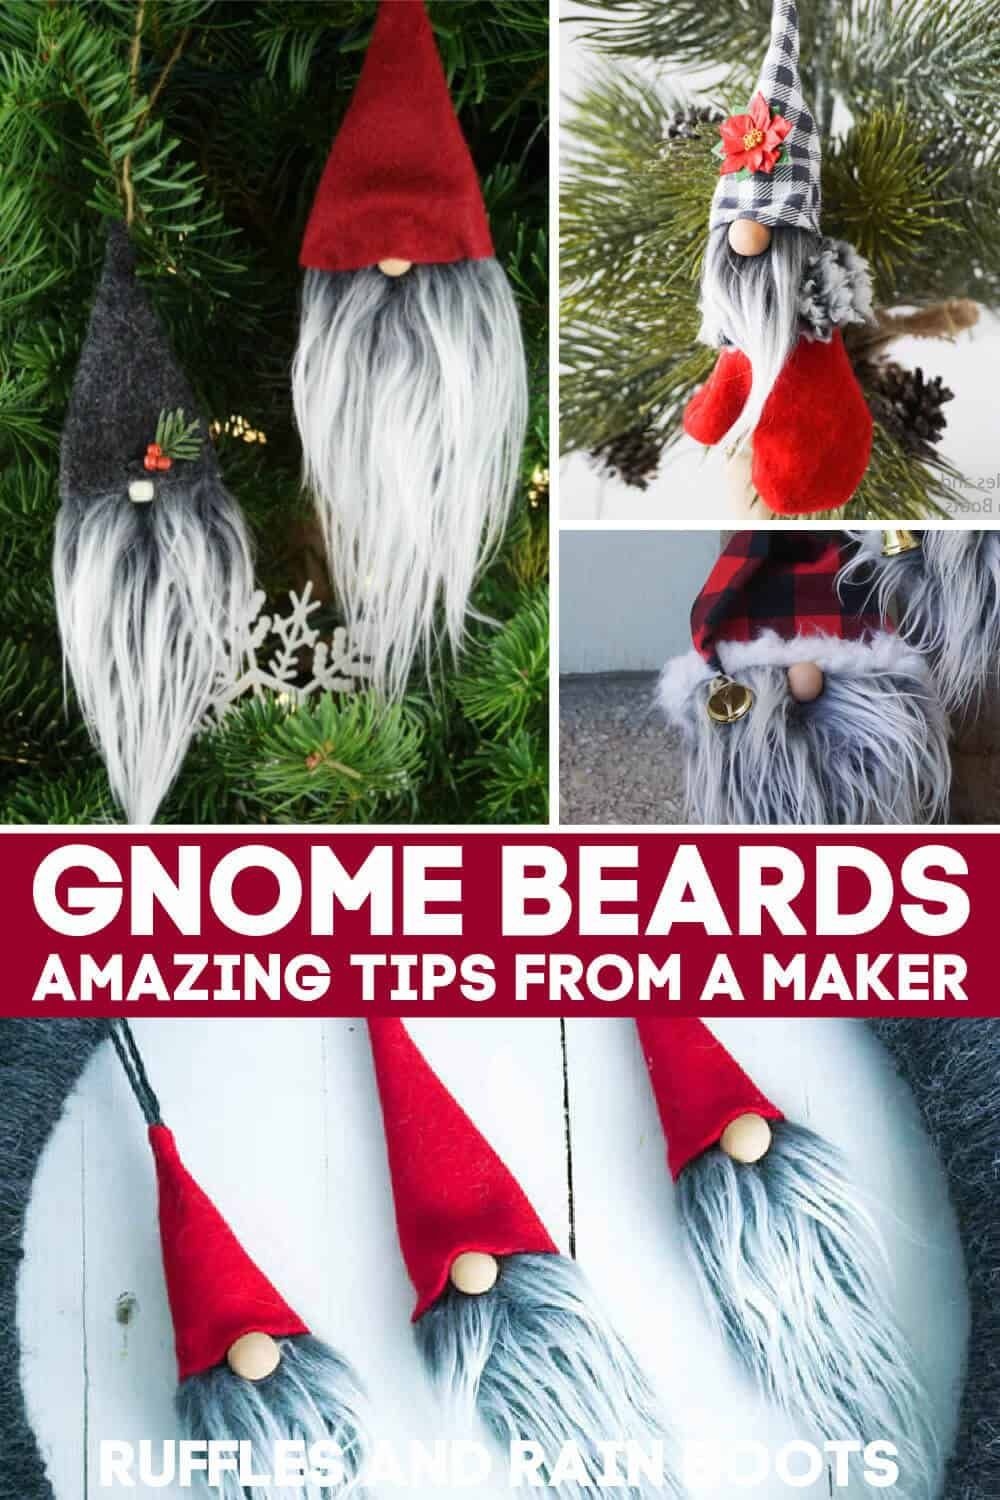 Learn How To Make A Gnome Beard Christmas Decor Diy Xmas Crafts Gnomes Crafts